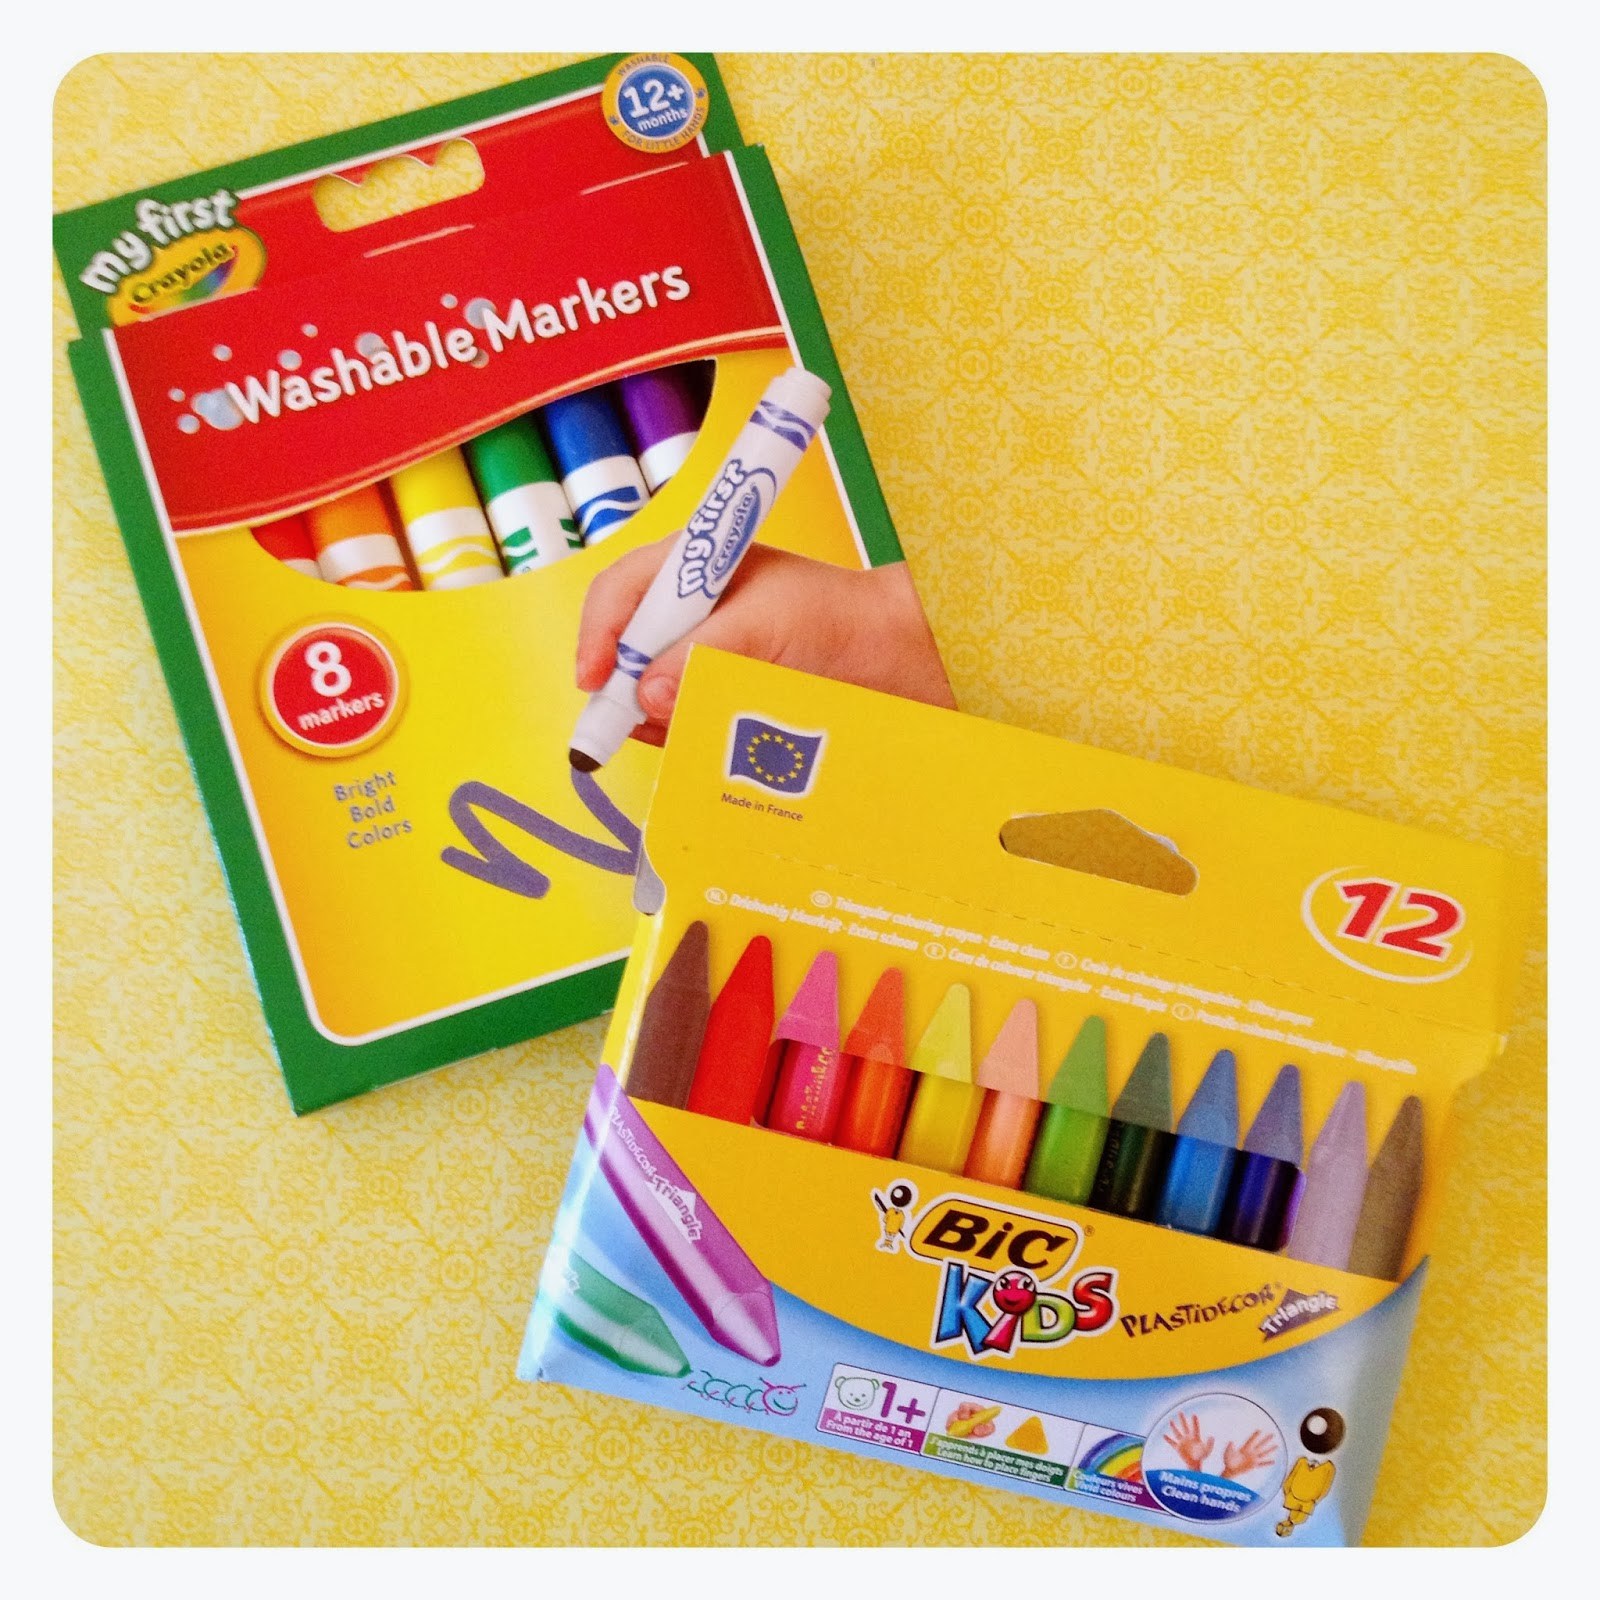 mamasVIB | V. I. BUSY BEES: Art Attack…the Crayola pieces every little budding artist needs, V. I. BABY ART | Art Attack | my first crayola | art materials for toddlers | first crayons and pencils | baby art | mamaVIB